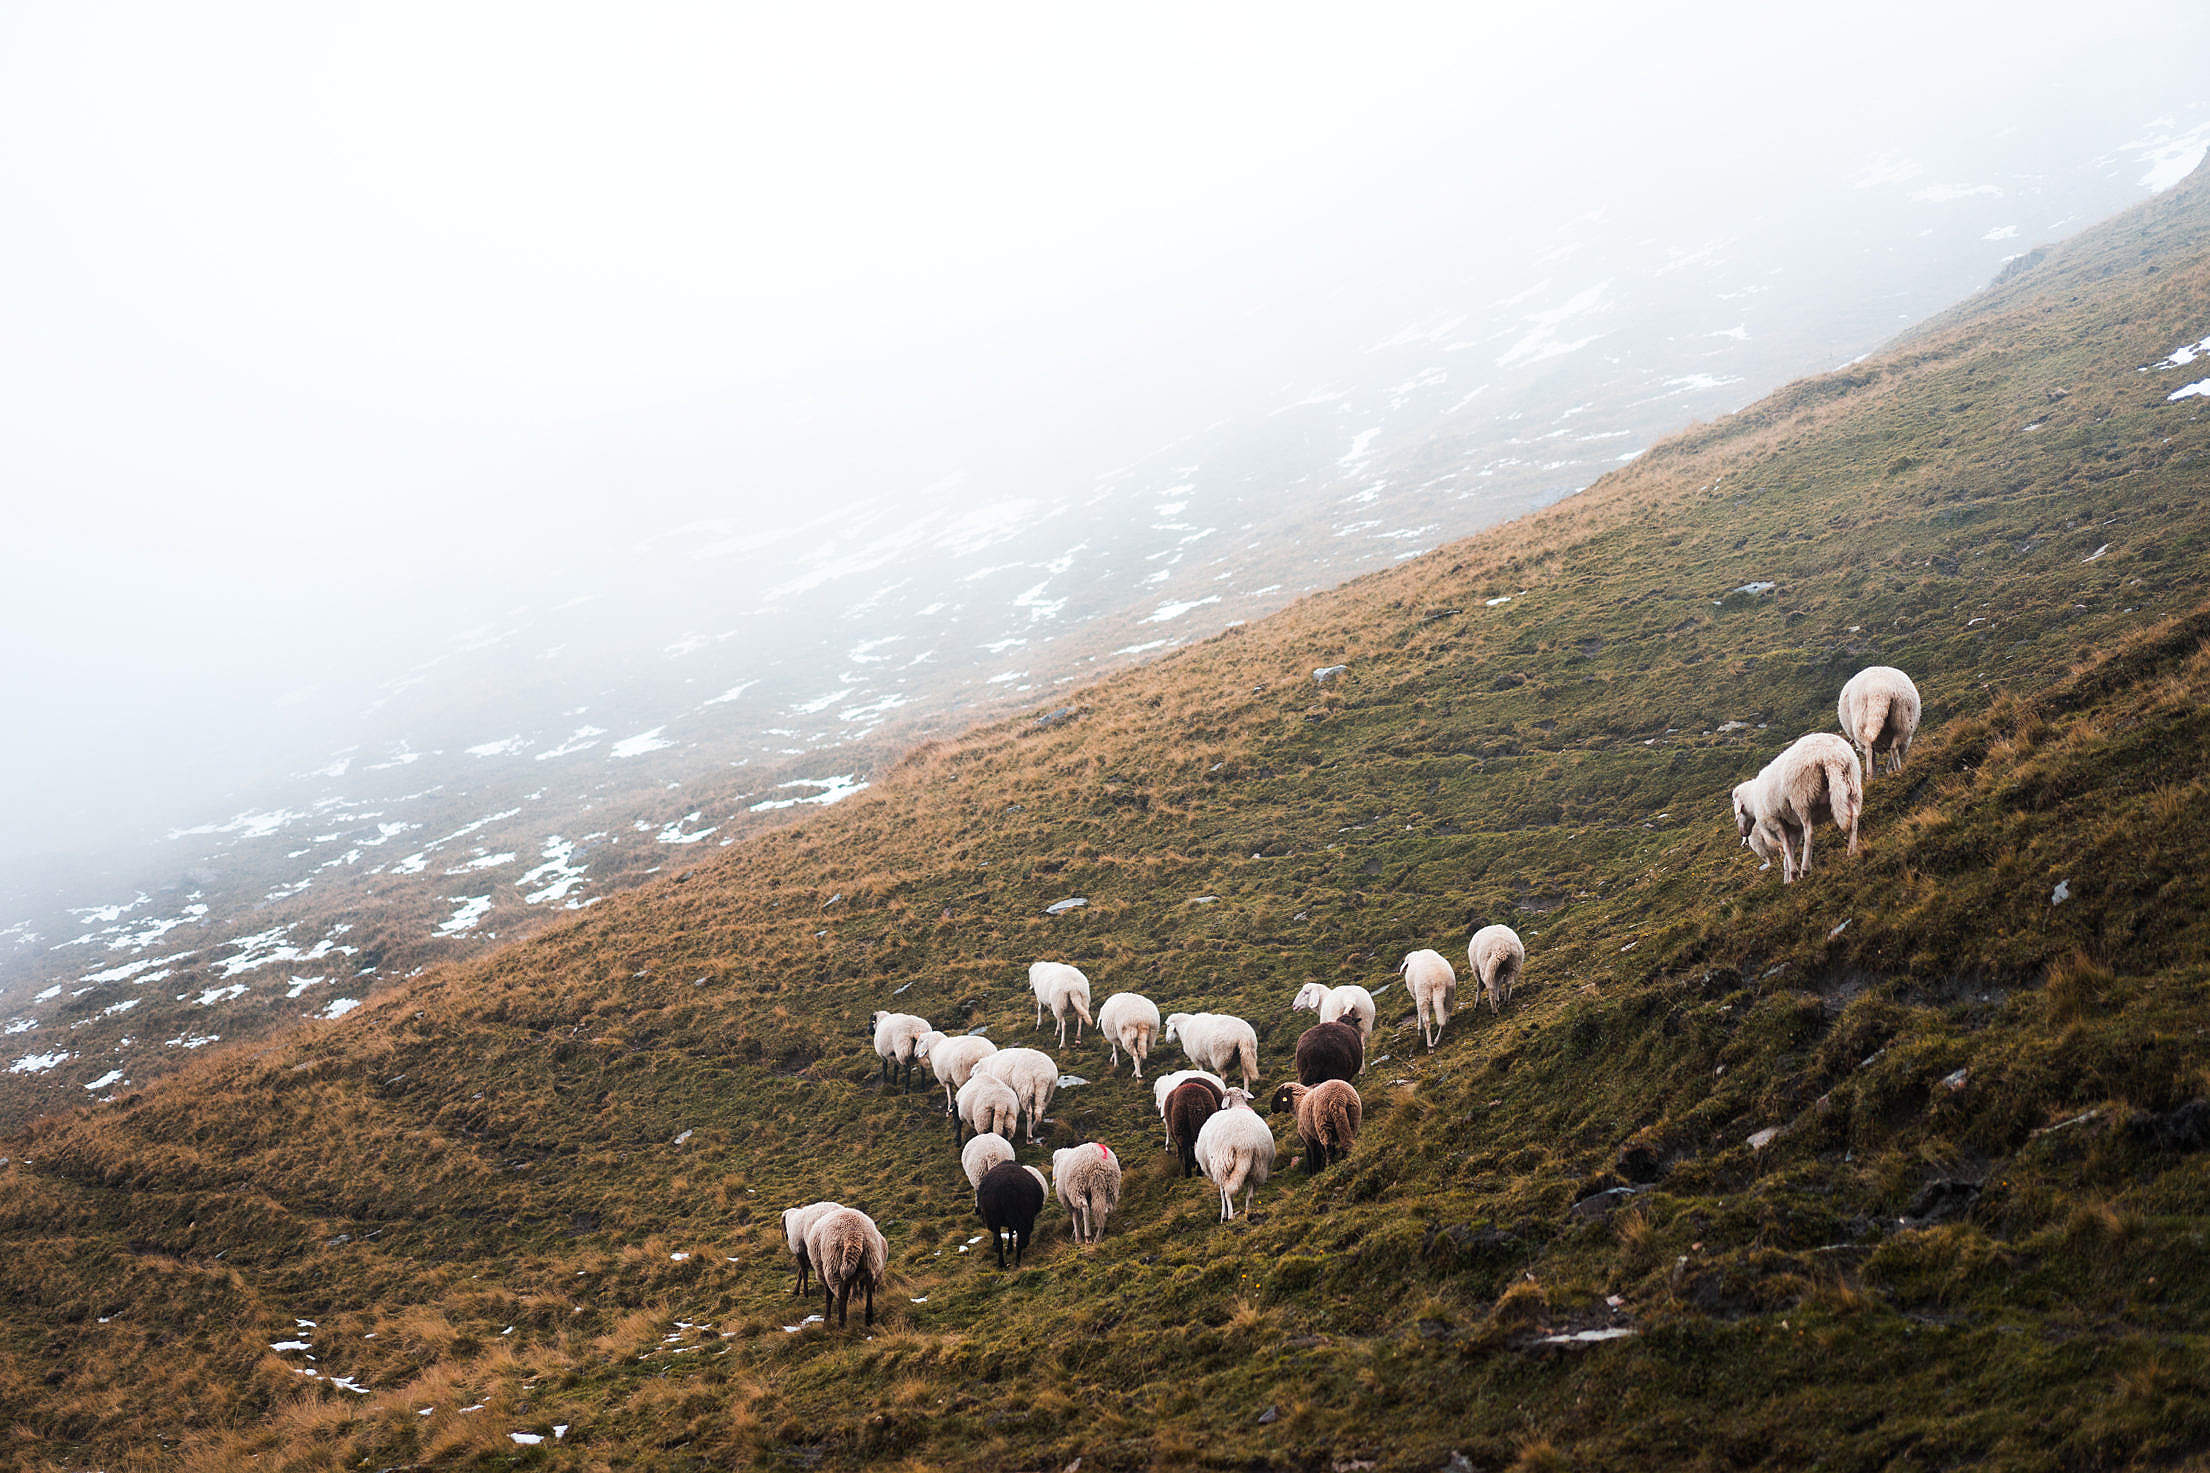 Flock of Sheep in the Mountains Free Stock Photo